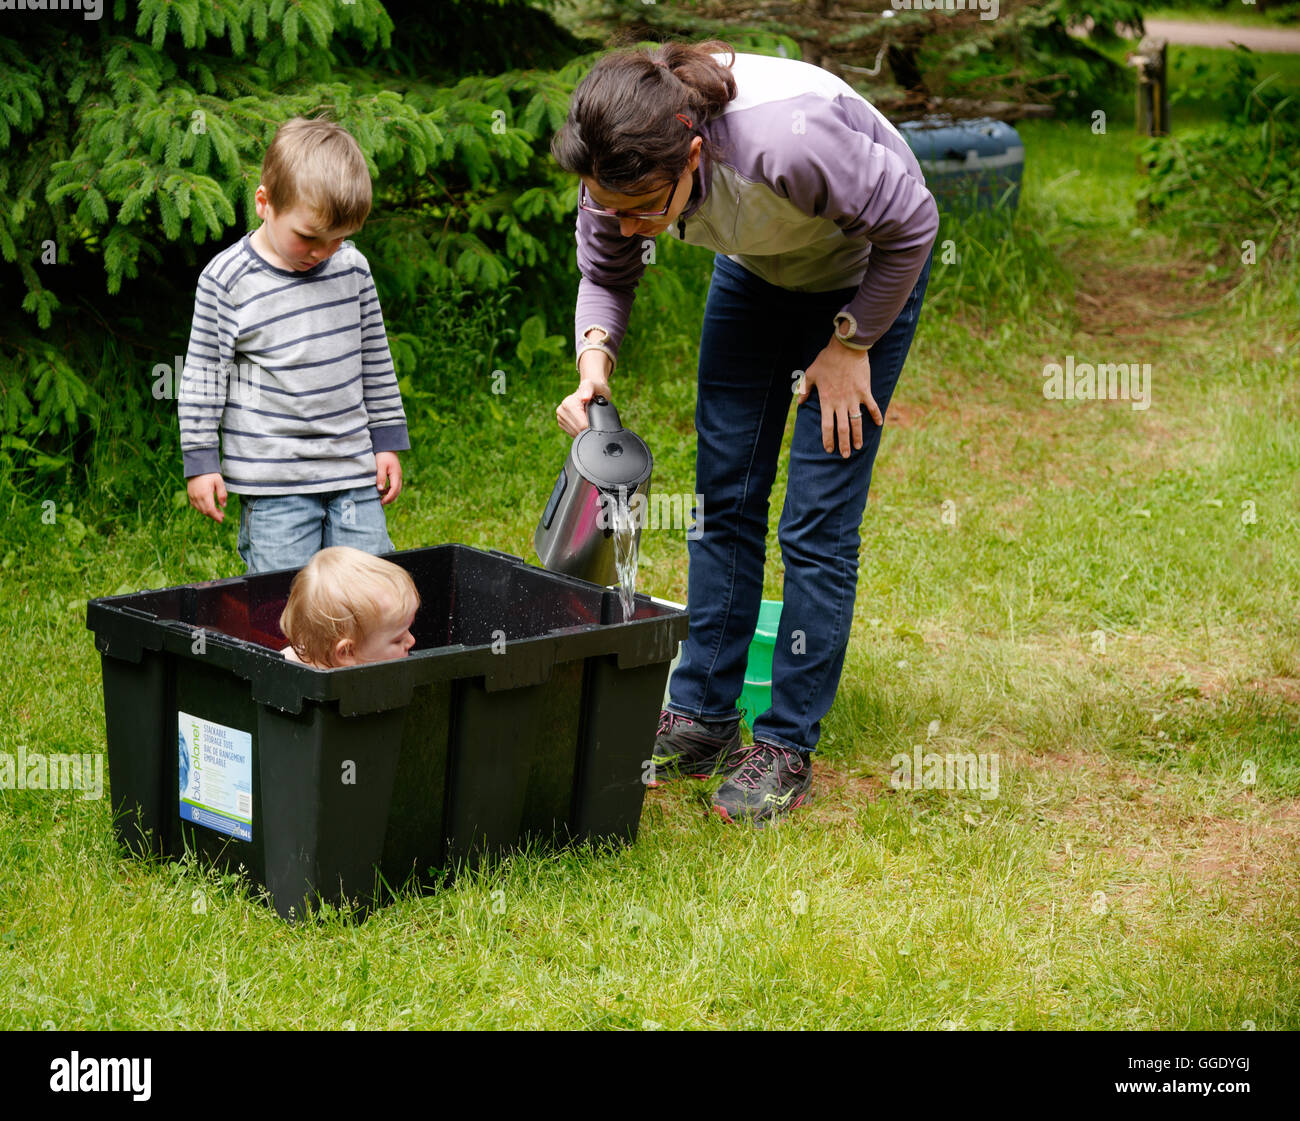 A little girl (2 years old) being bathed in a plastic box while camping Mum adds warm water from a kettle and brother Stock Photo